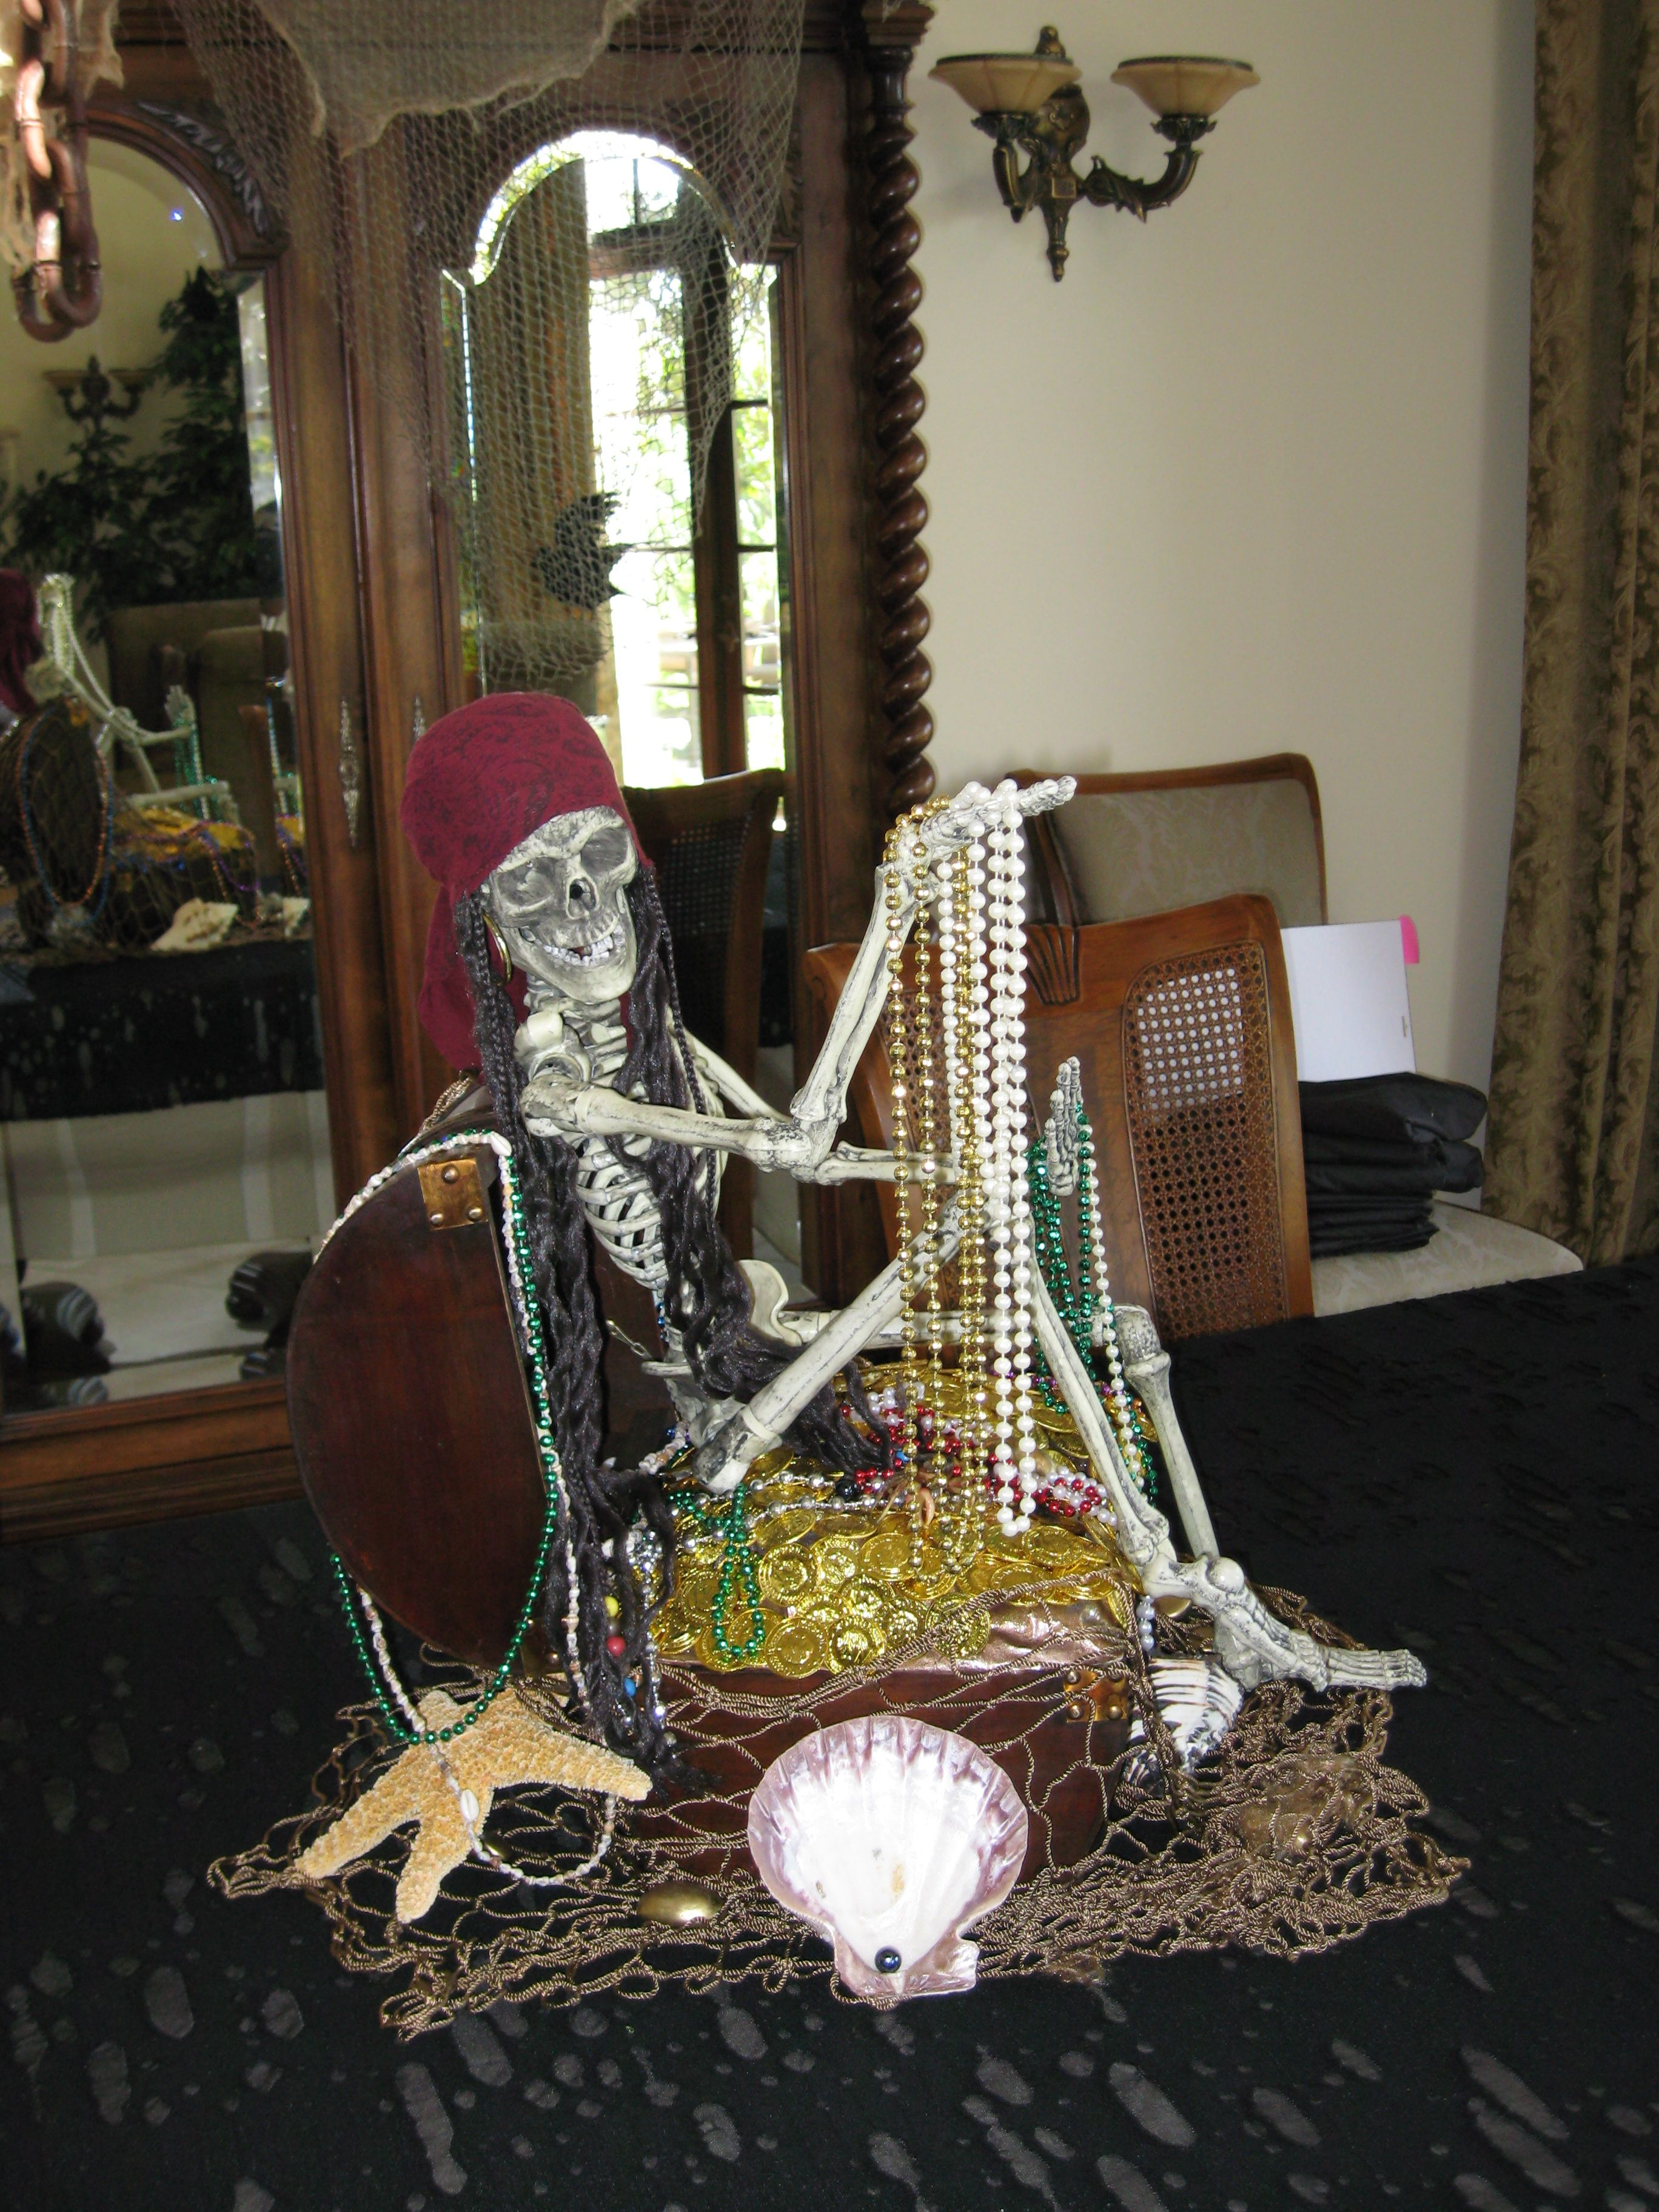 Pirate Party Decor - Centerpiece-  This might be to Halloween like but I like the display of pearls